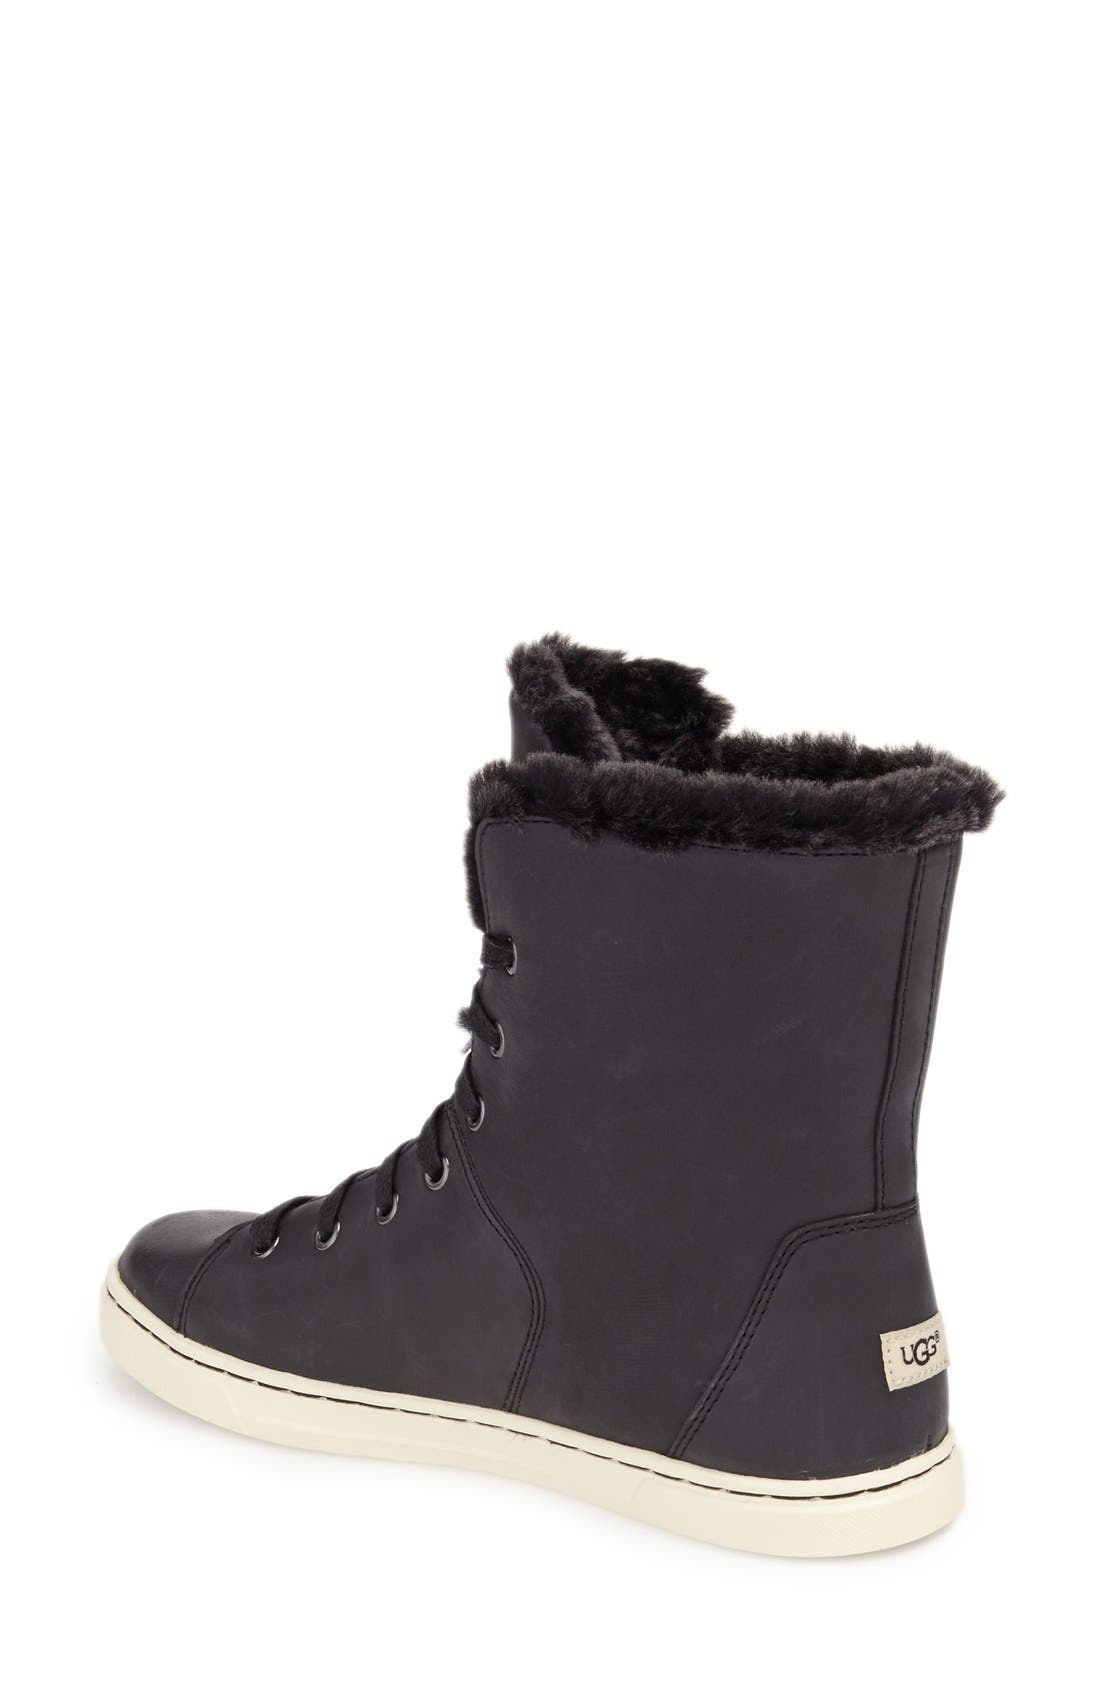 'Croft Luxe' Genuine Shearling High Top Sneaker,                             Alternate thumbnail 3, color,                             001